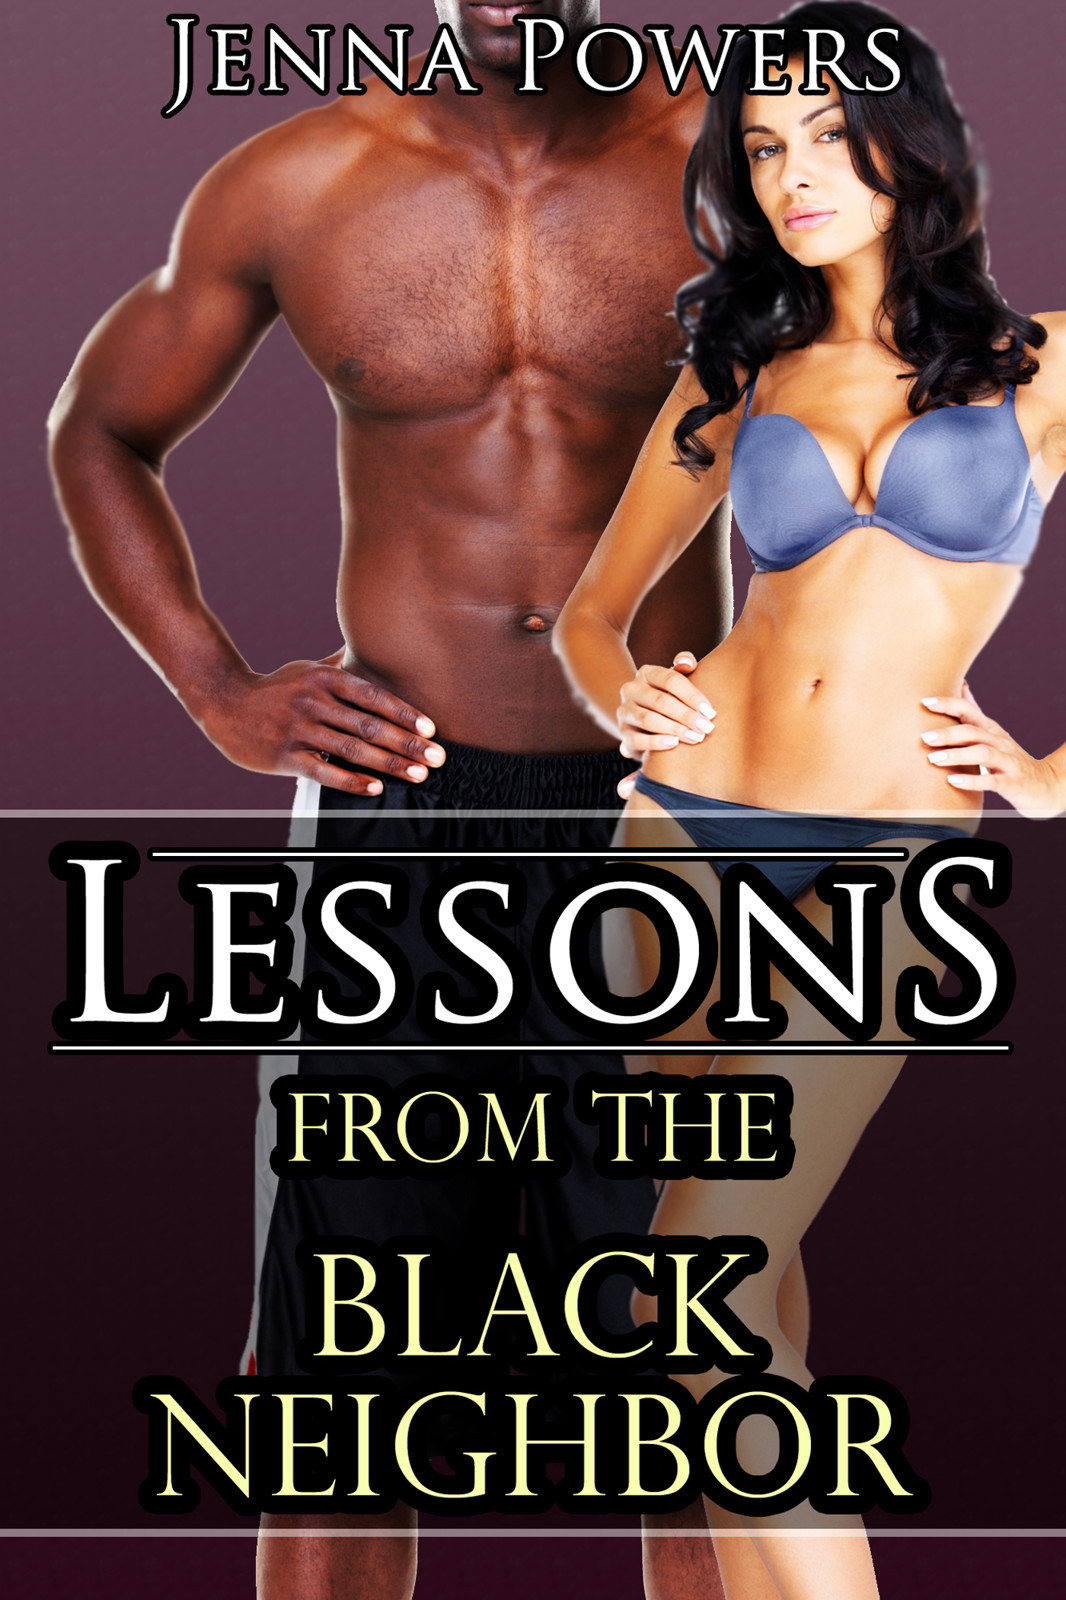 Lessons from the Black Neighbor